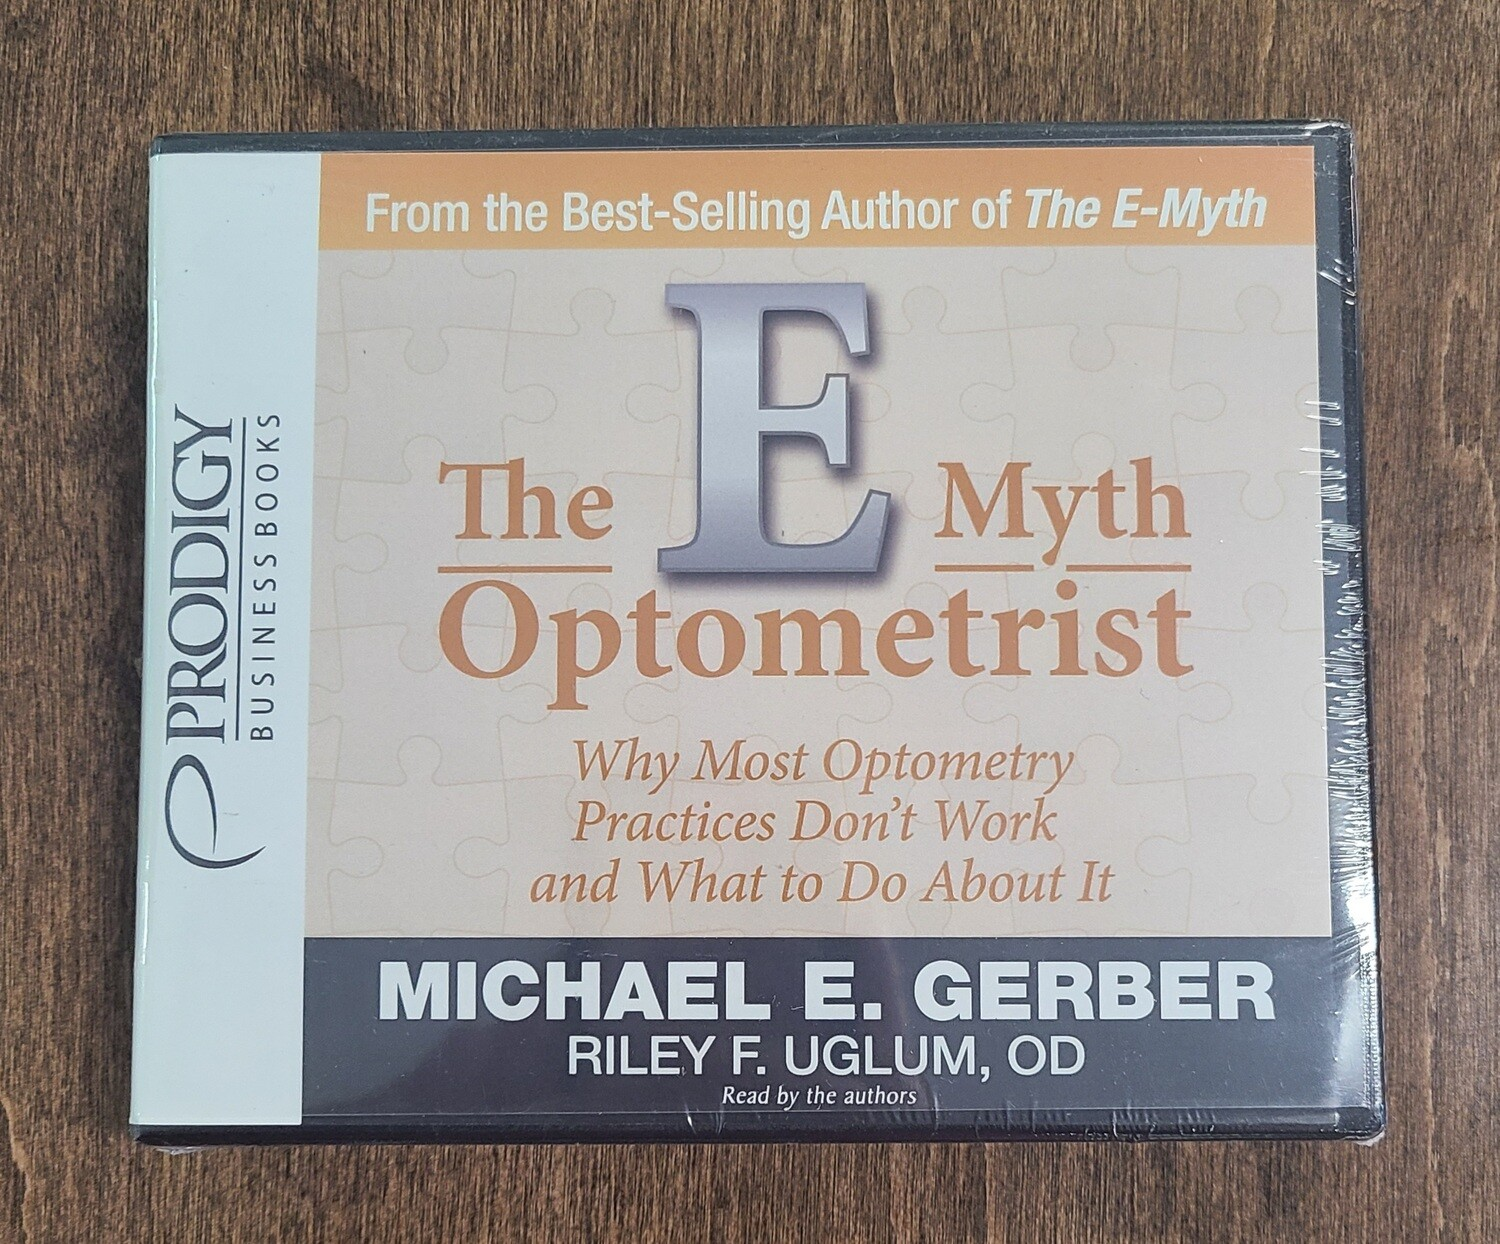 The E-Myth Optometrist: Why Most Optometry Practices Don't Work and What to Do About It by Michael E. Gerber and Riley F. Uglum